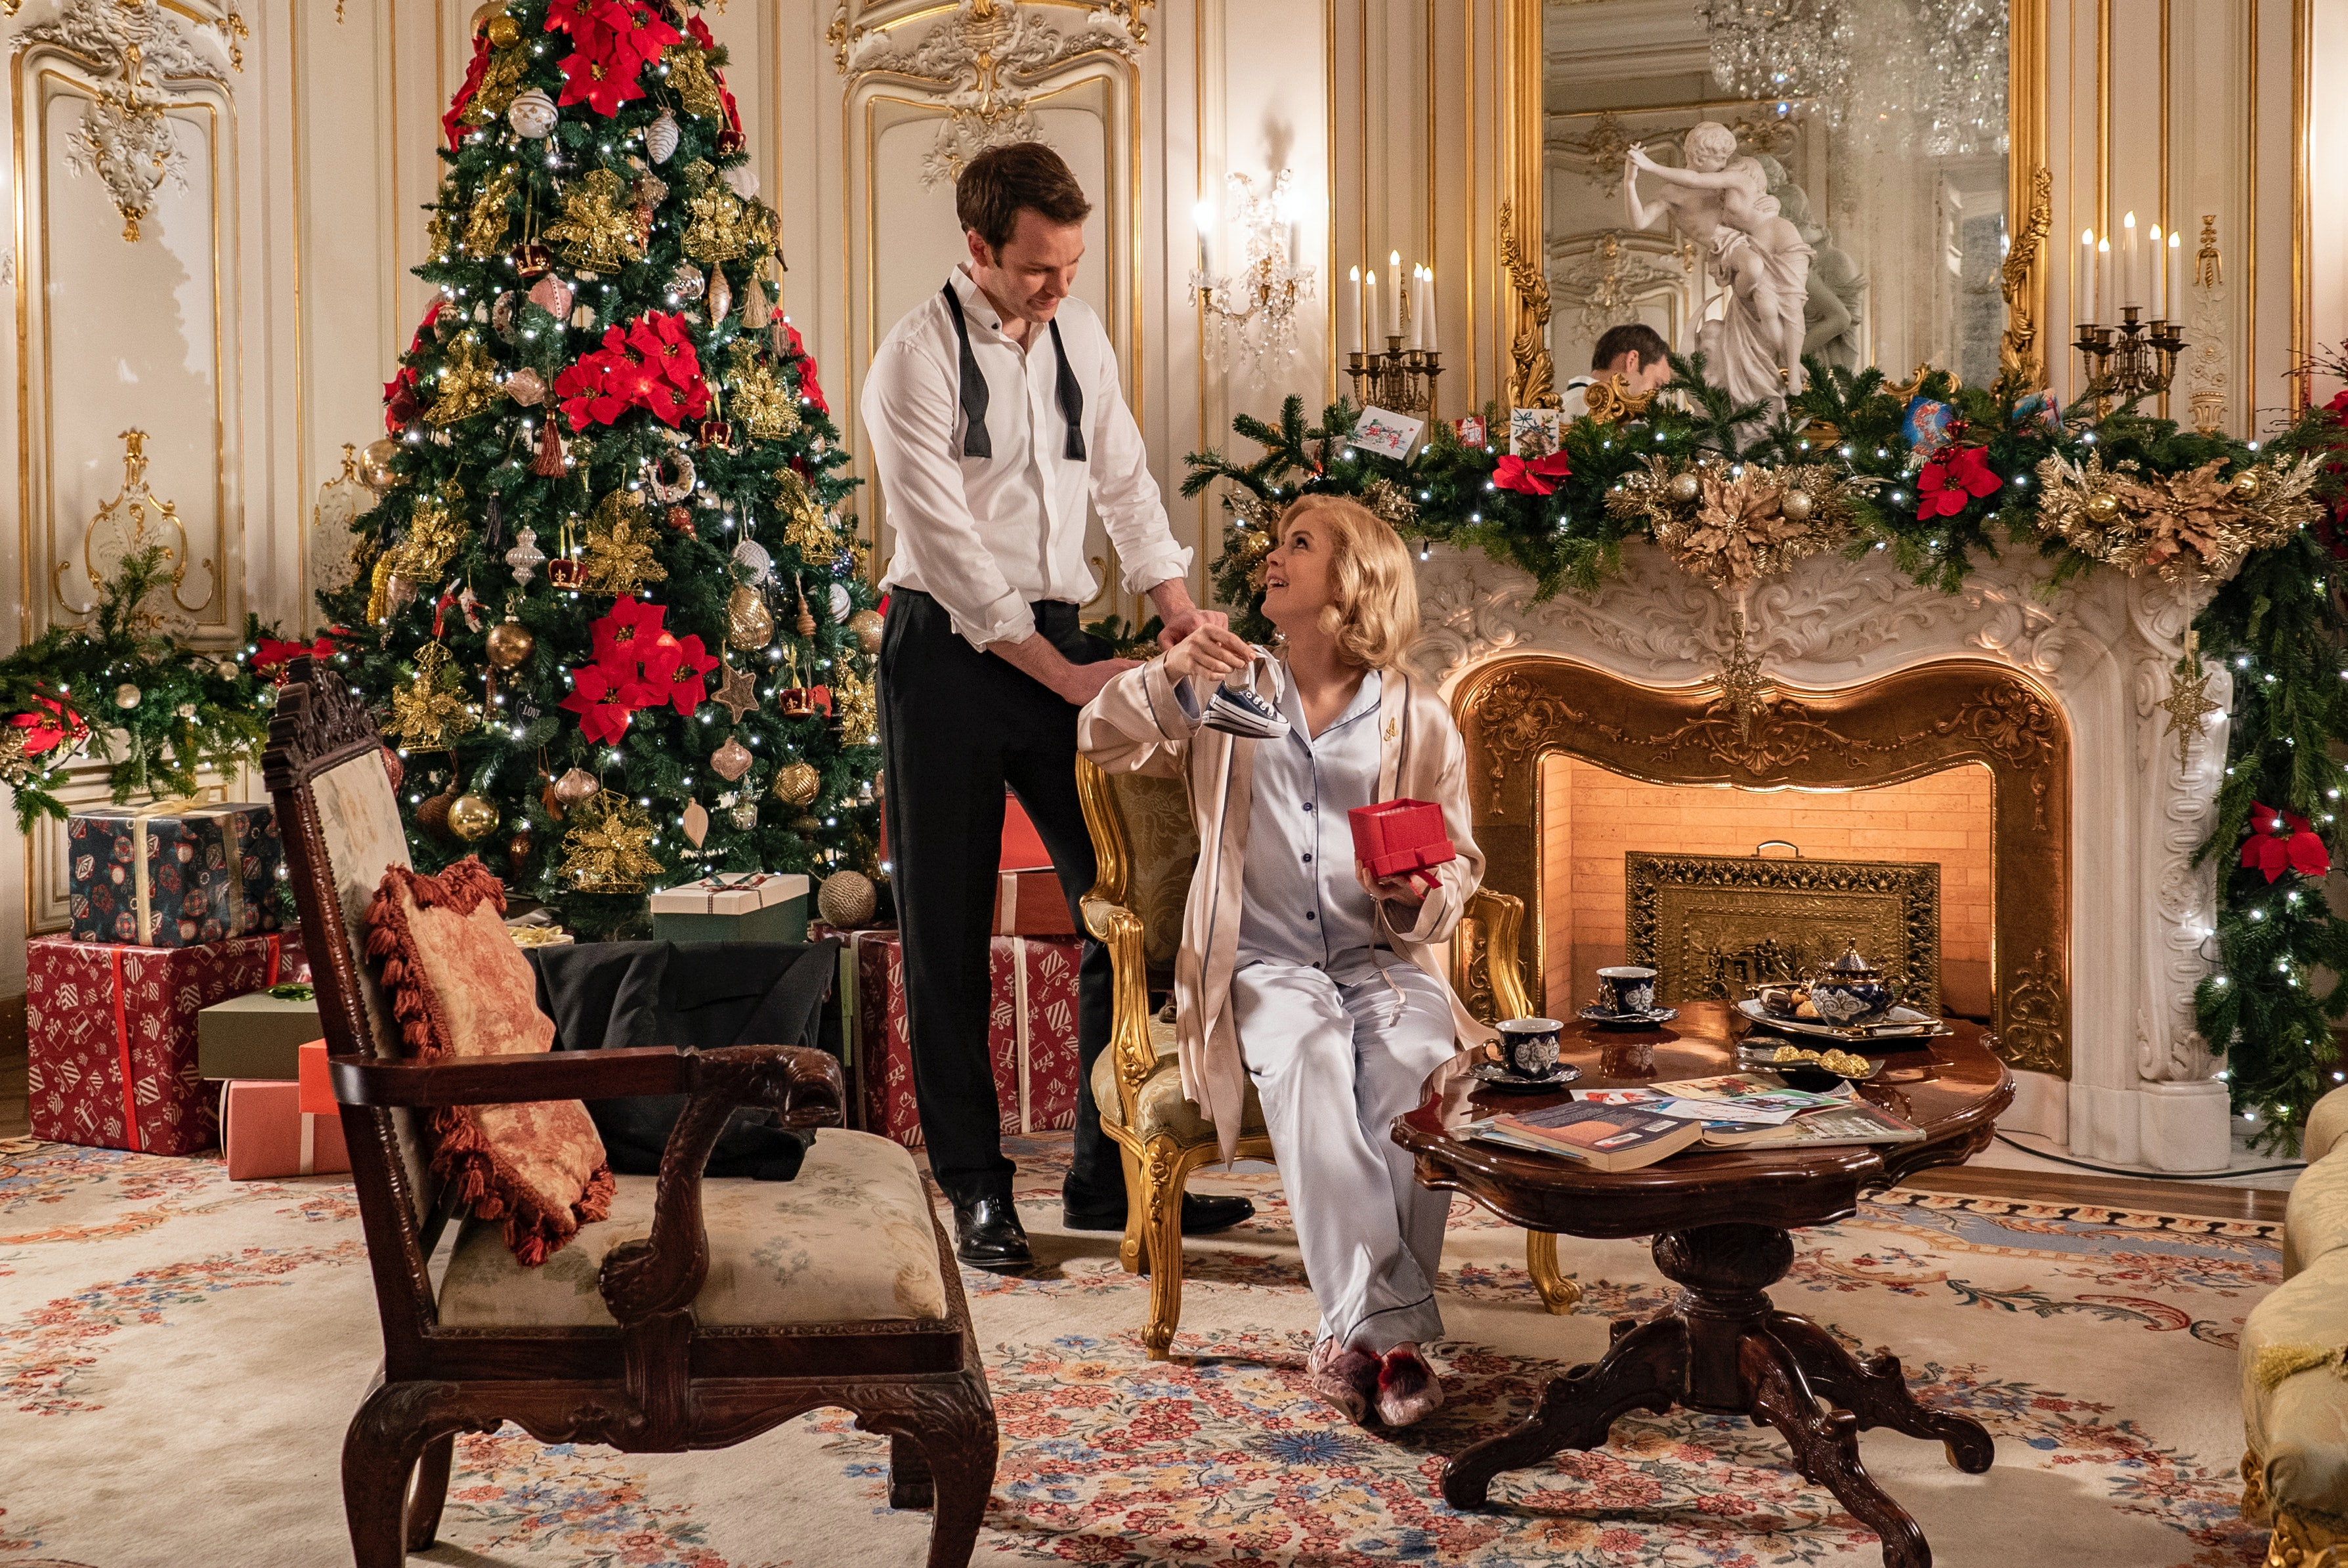 Picture A Christmas.A Christmas Prince 3 Will Feature A Royal Baby An Ancient